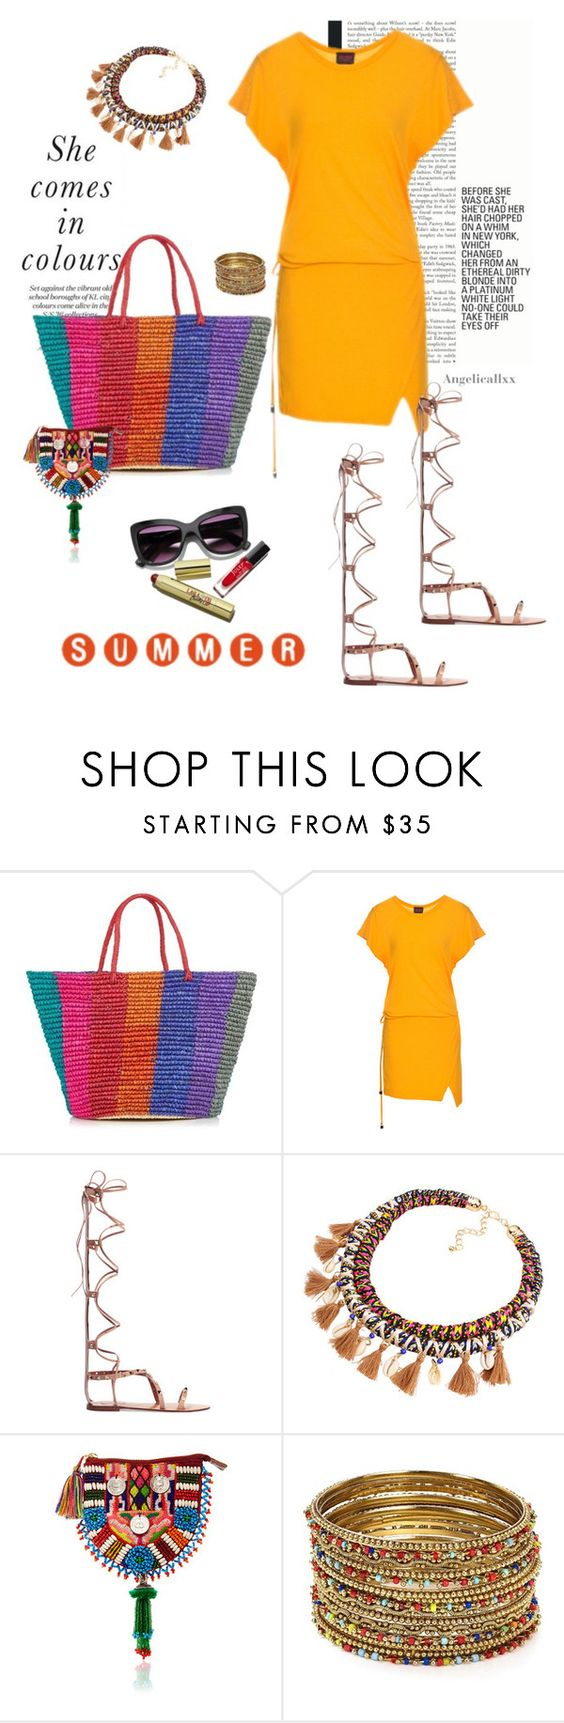 """She comes in colours"" by angelicallxx ❤ liked on Polyvore featuring Sensi Studio, Valentino, Figue, Aqua and strawbags"